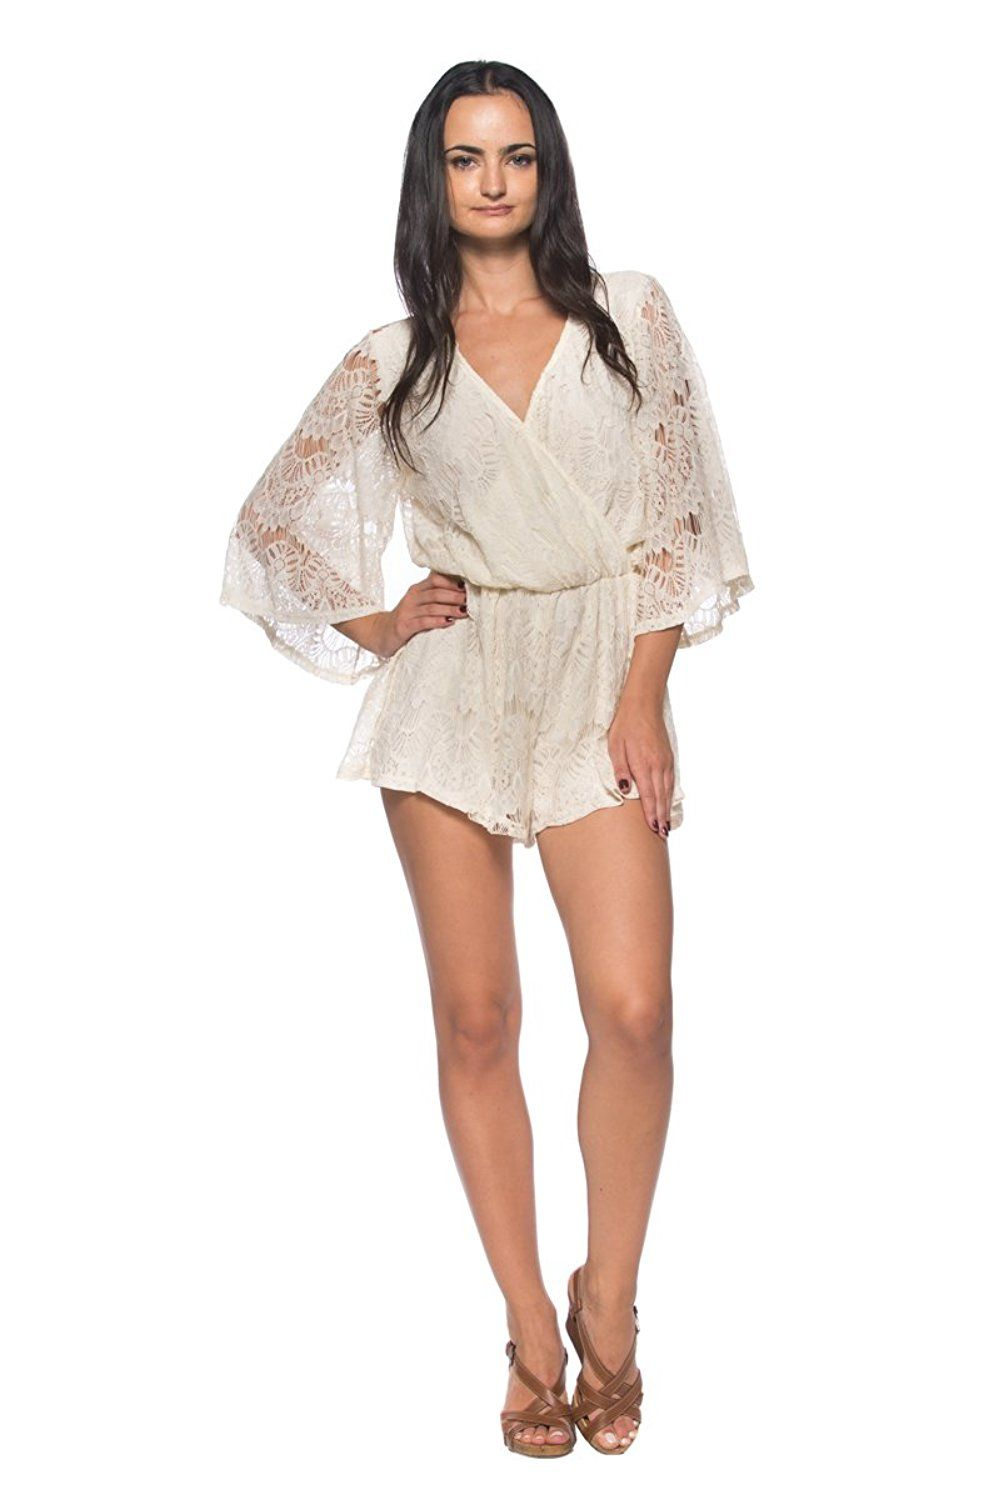 666d2453fe7 Women s Ivory Lace Caftan Sleeve Crossover Wrap Top Playsuit Dress Shorts  Romper -- Want additional info  Click on the image.